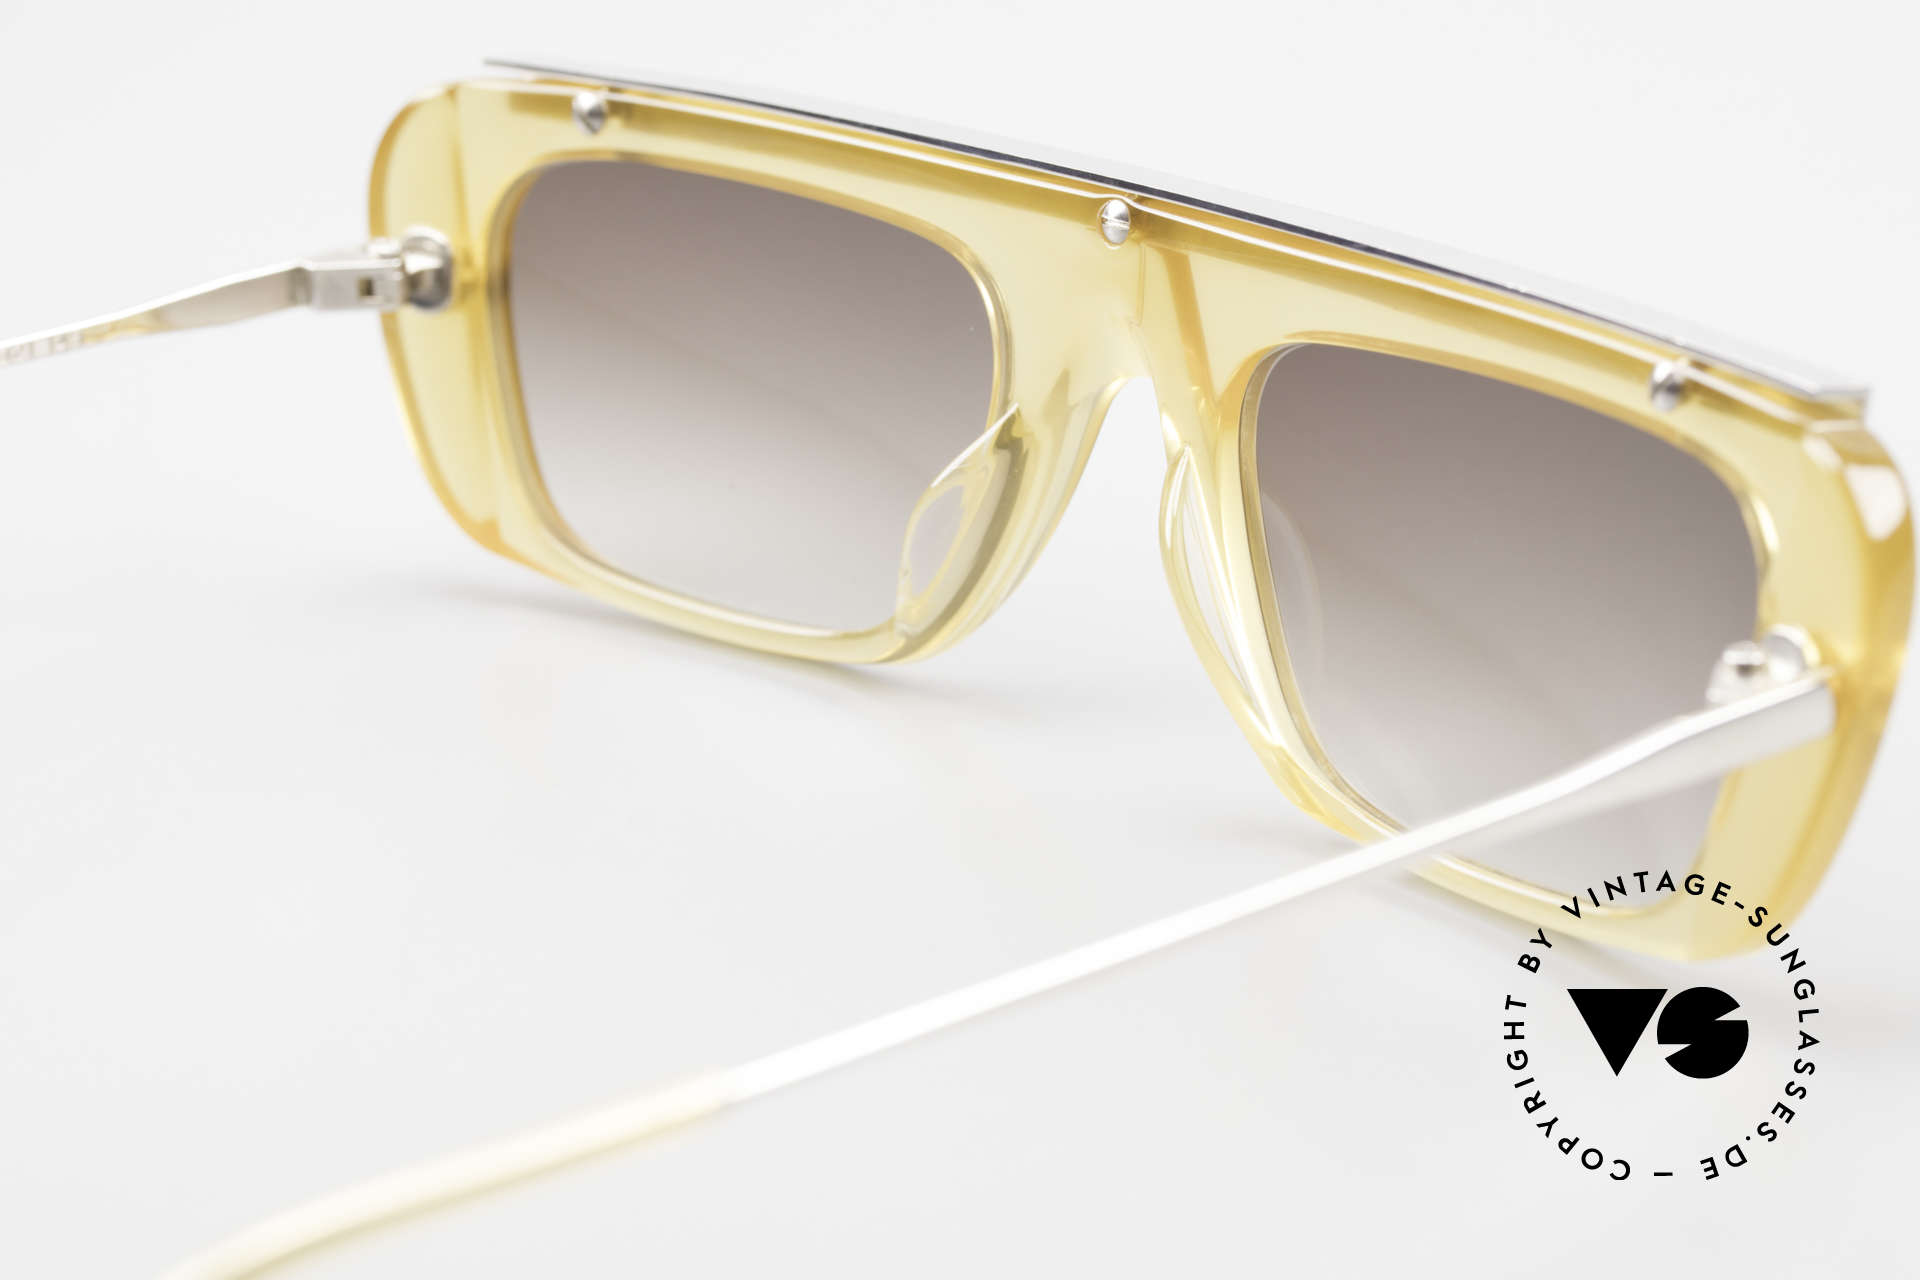 Jean Paul Gaultier 55-0771 Striking Vintage JPG Shades, the frame can be glazed with lenses of any kind, Made for Men and Women